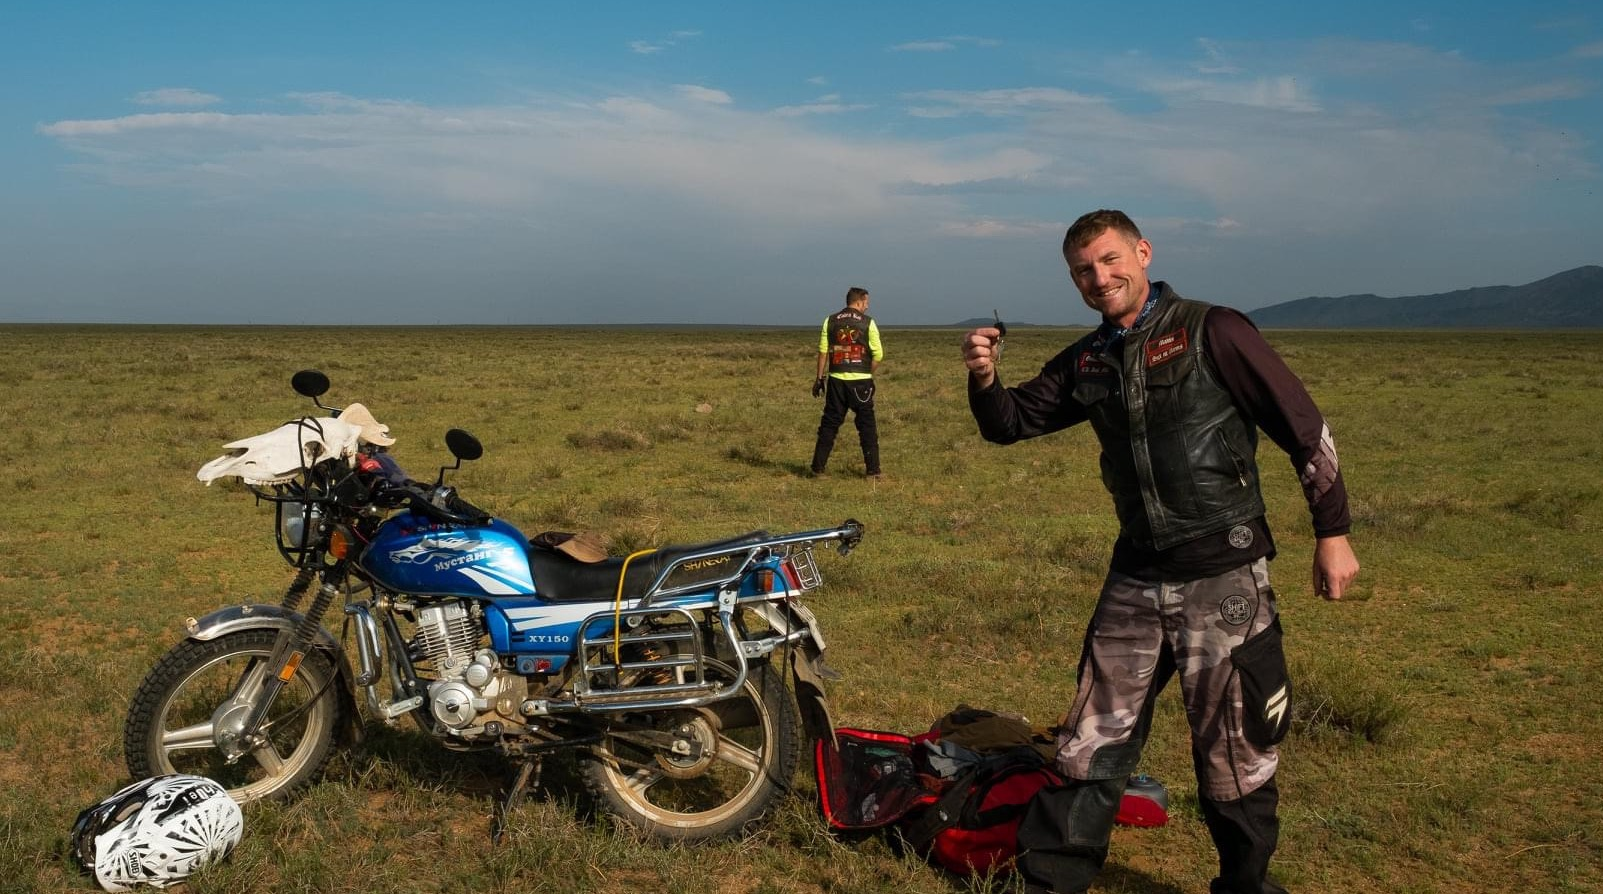 Josh Melick and Travis Pollock and a motorcycle on the Mongolia Steppe grasslands